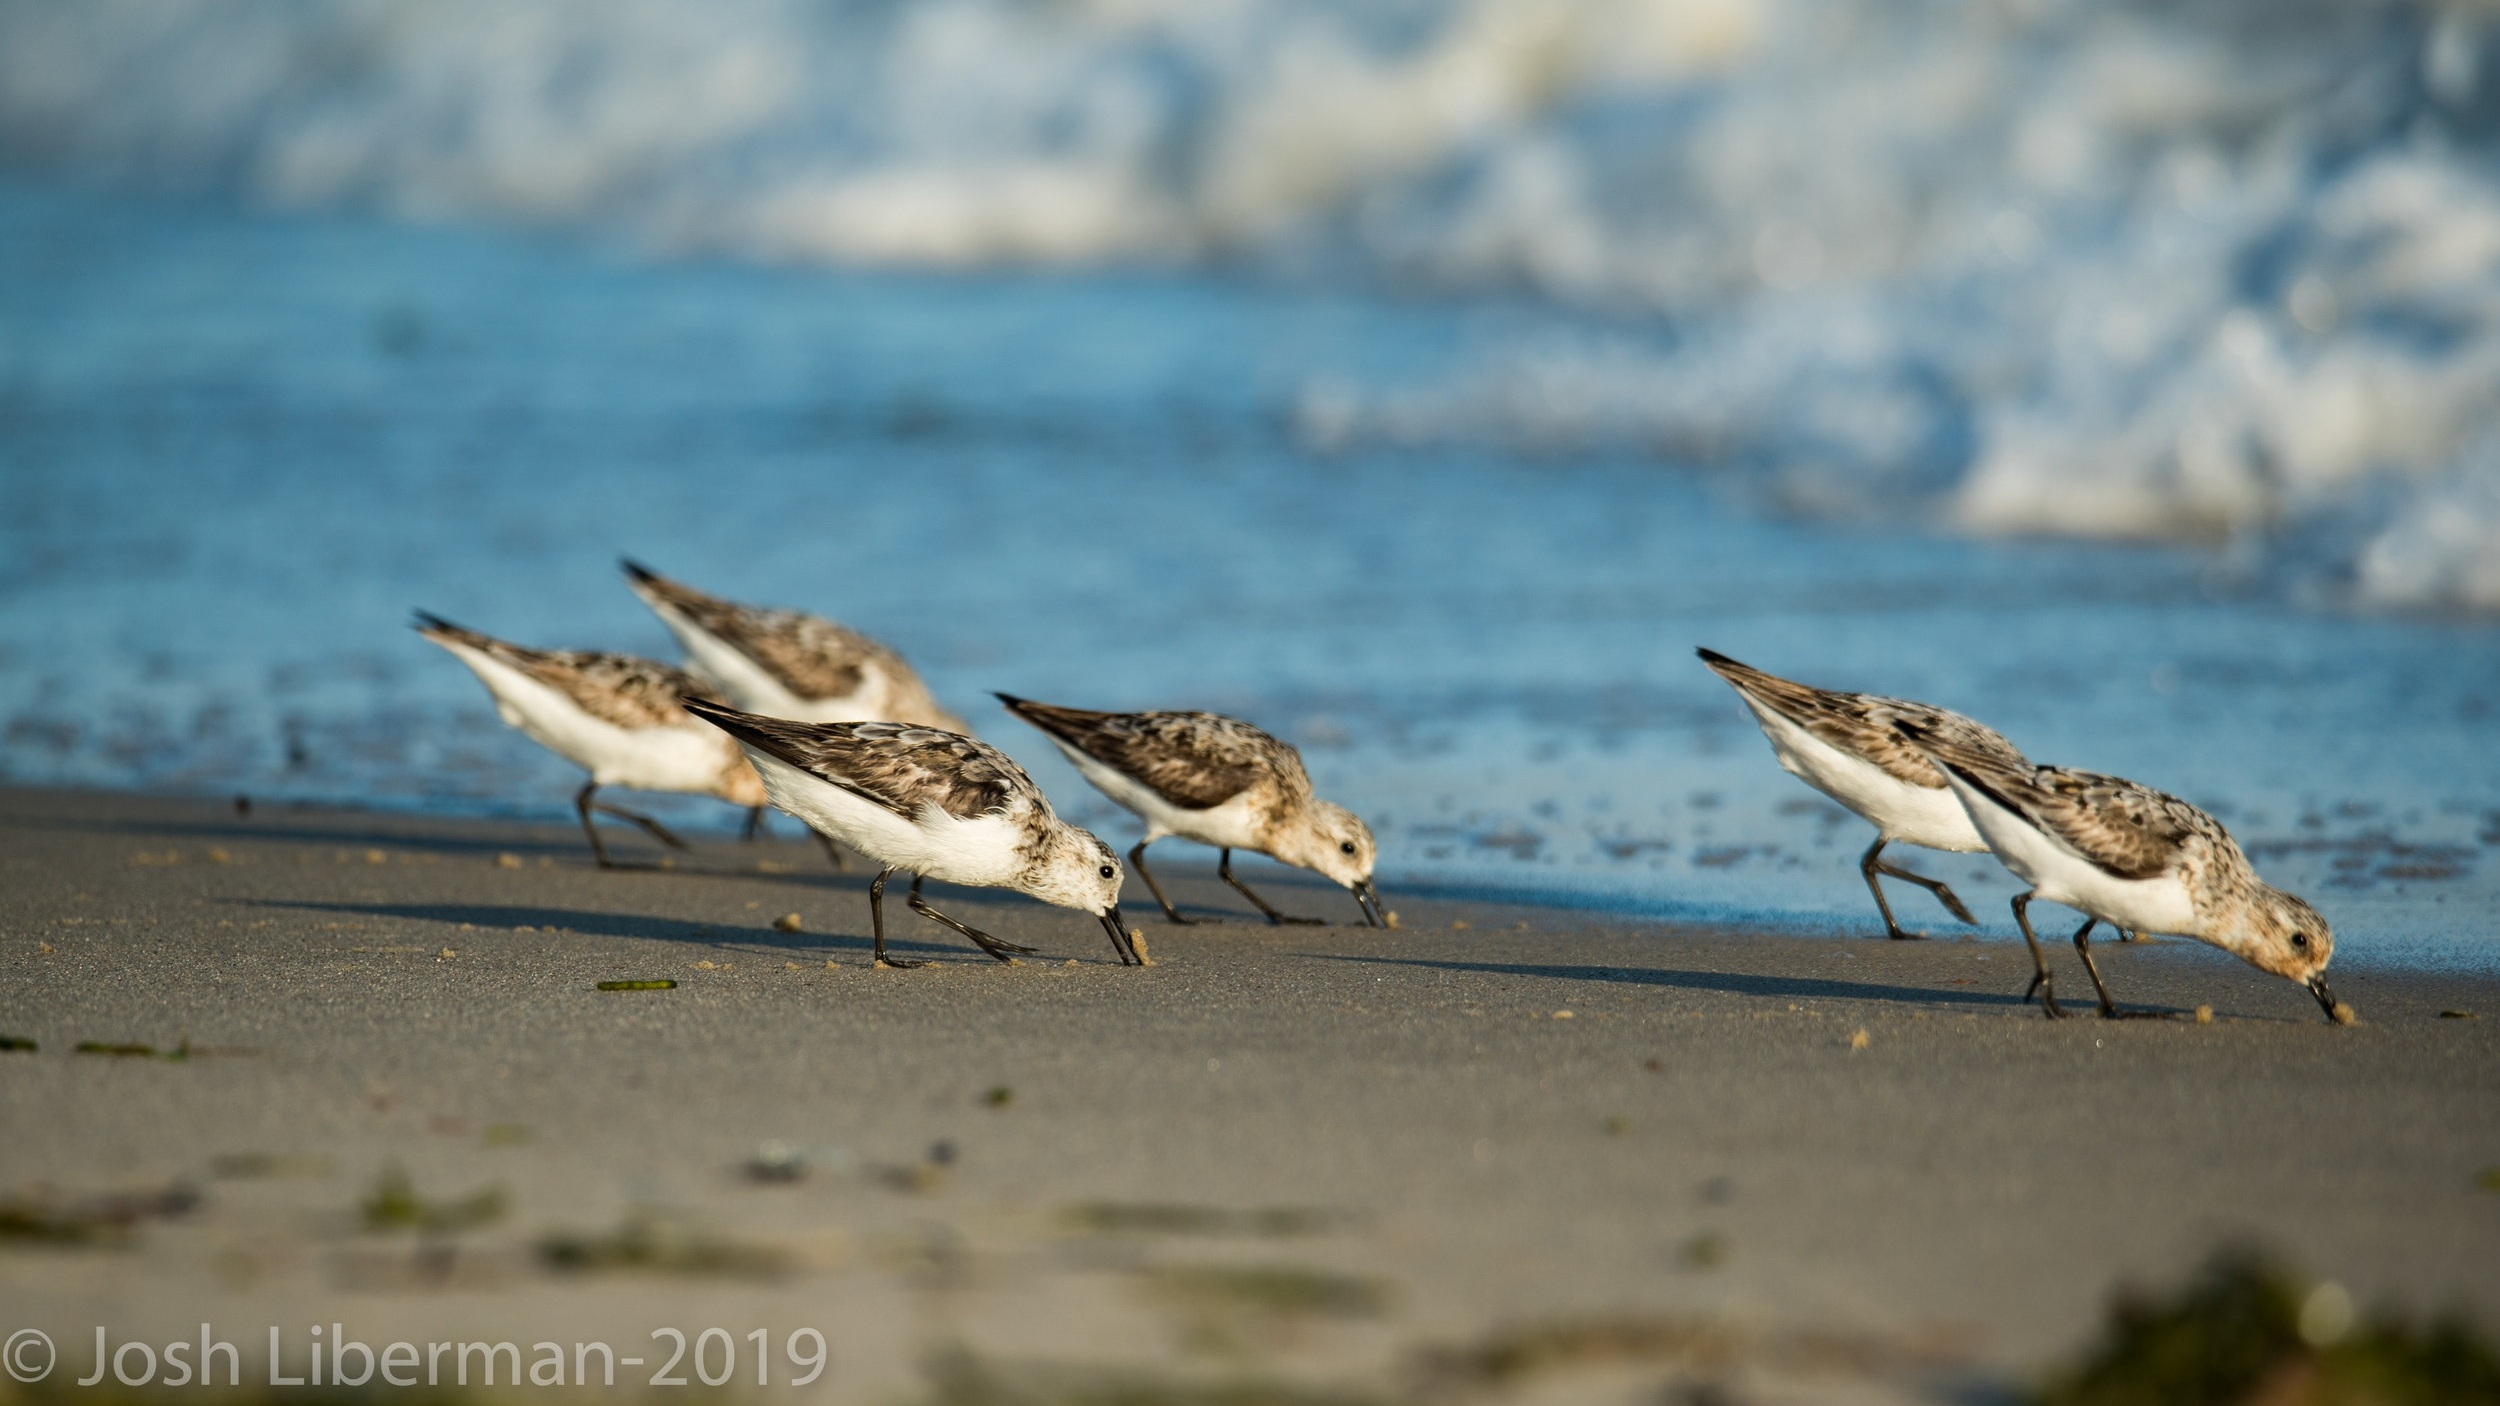 Sanderlings feed by running down the beach after a receding wave to pick up stranded invertebrates or search for prey hidden in the wet sand.